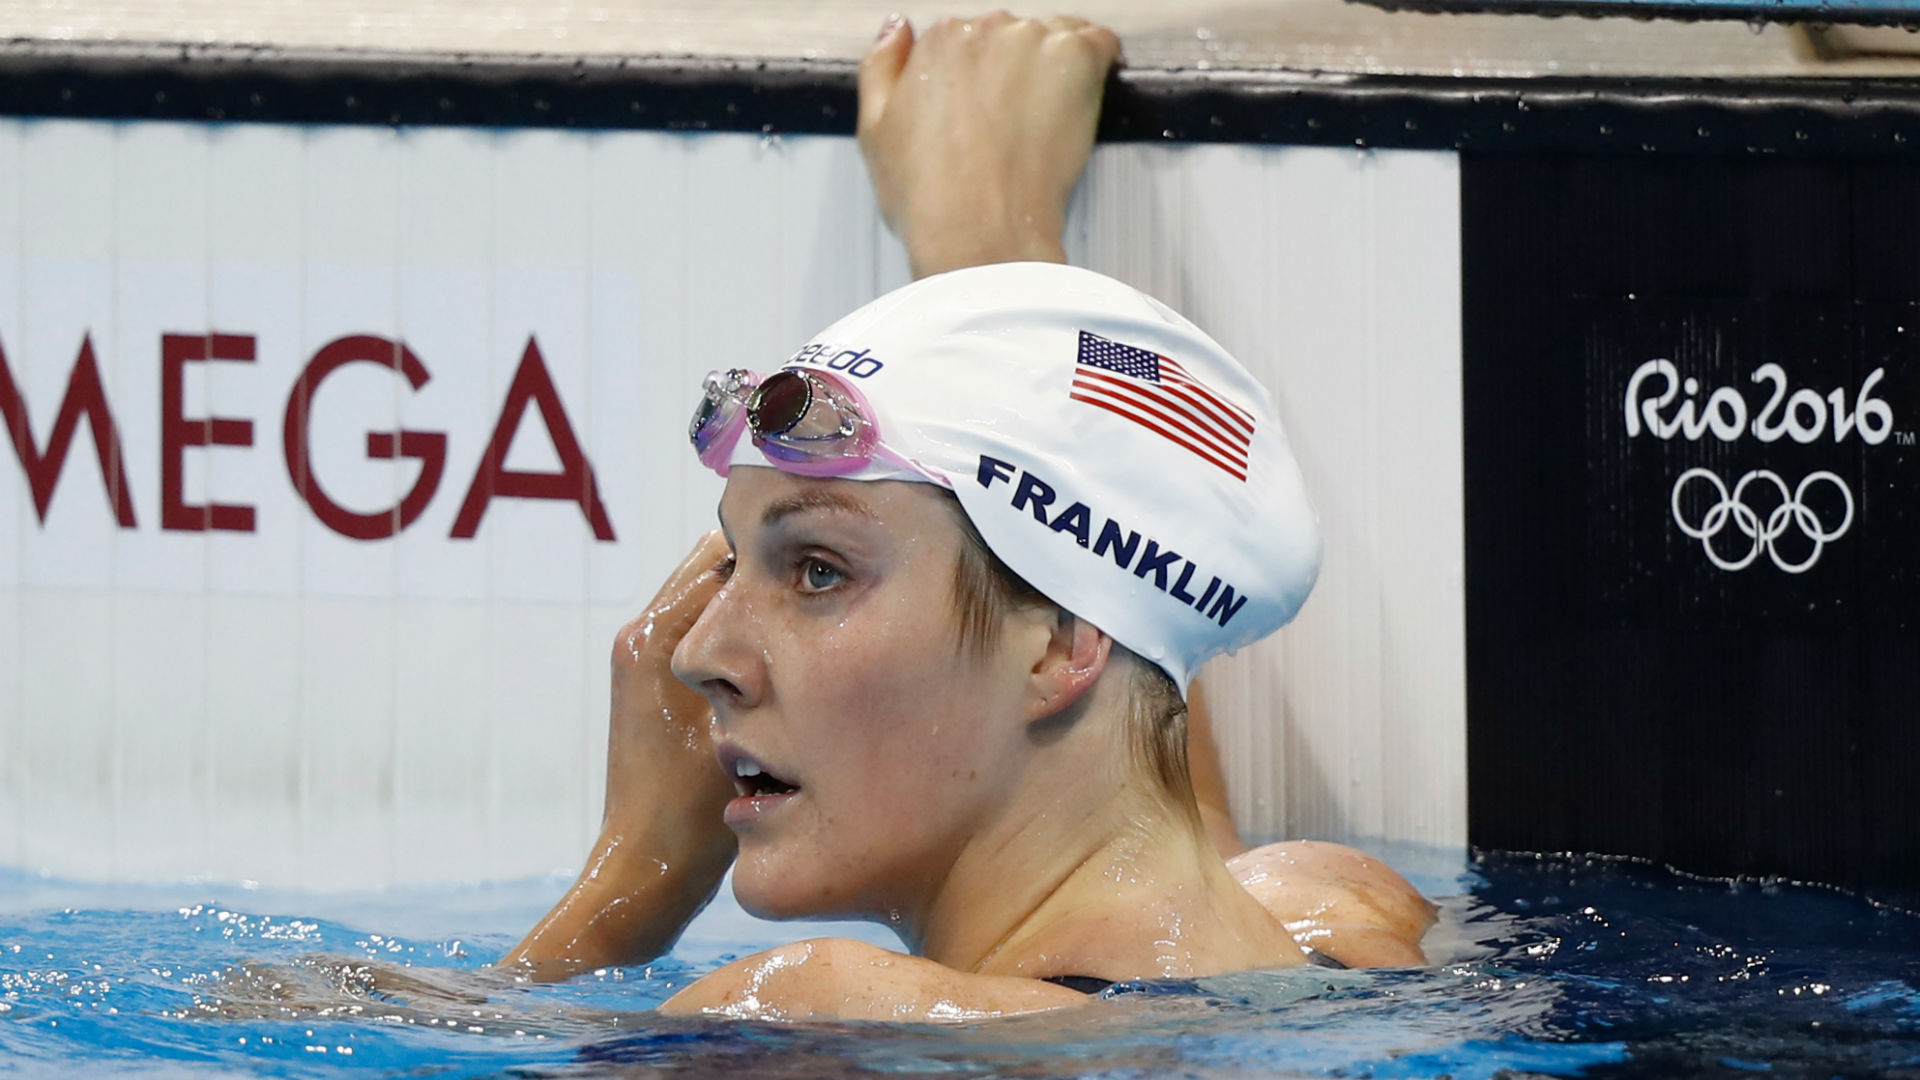 Stanford-bound Ledecky crushes world record in 400m freestyle